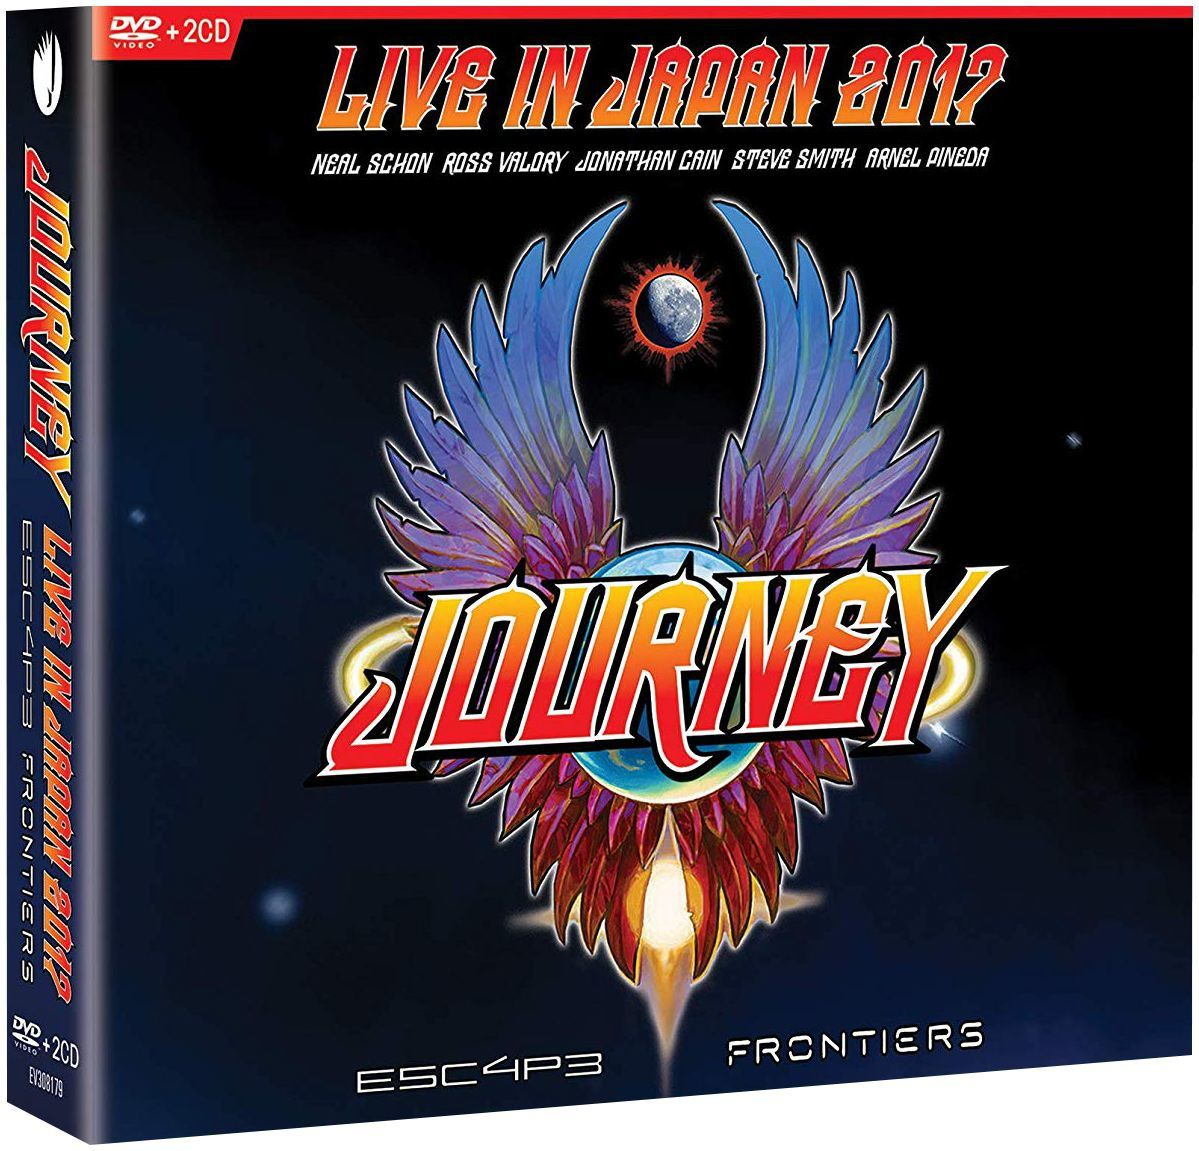 Journey - Escape & Frontiers : Live In Tokyo - 2 CD et Blu-ray le 29 mars 2019